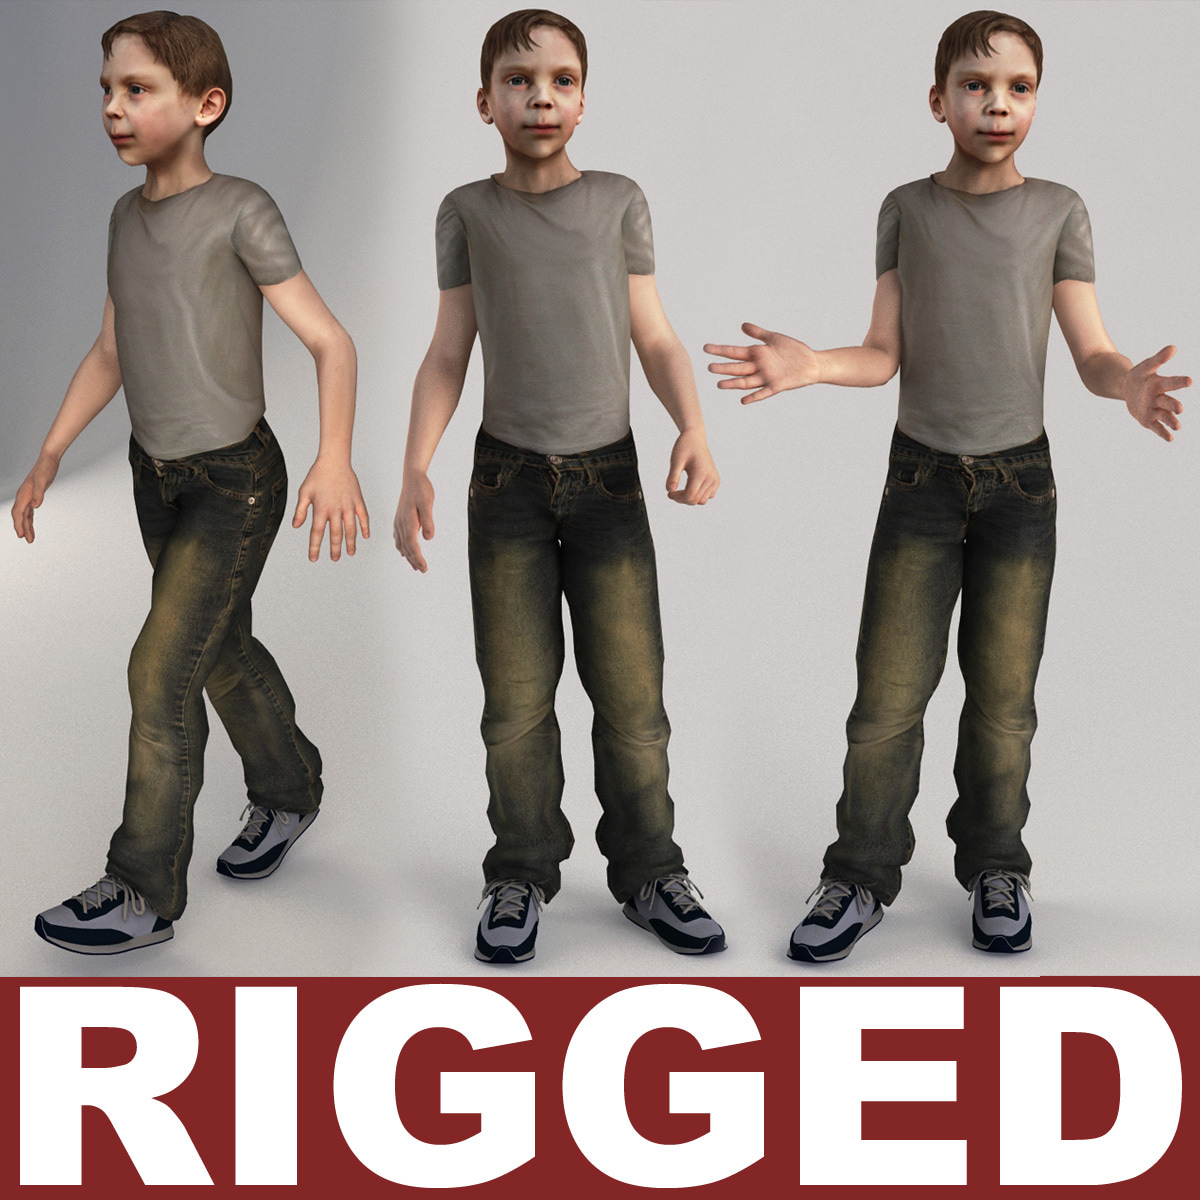 Boy_10-13_Years_Rigged_00.jpg